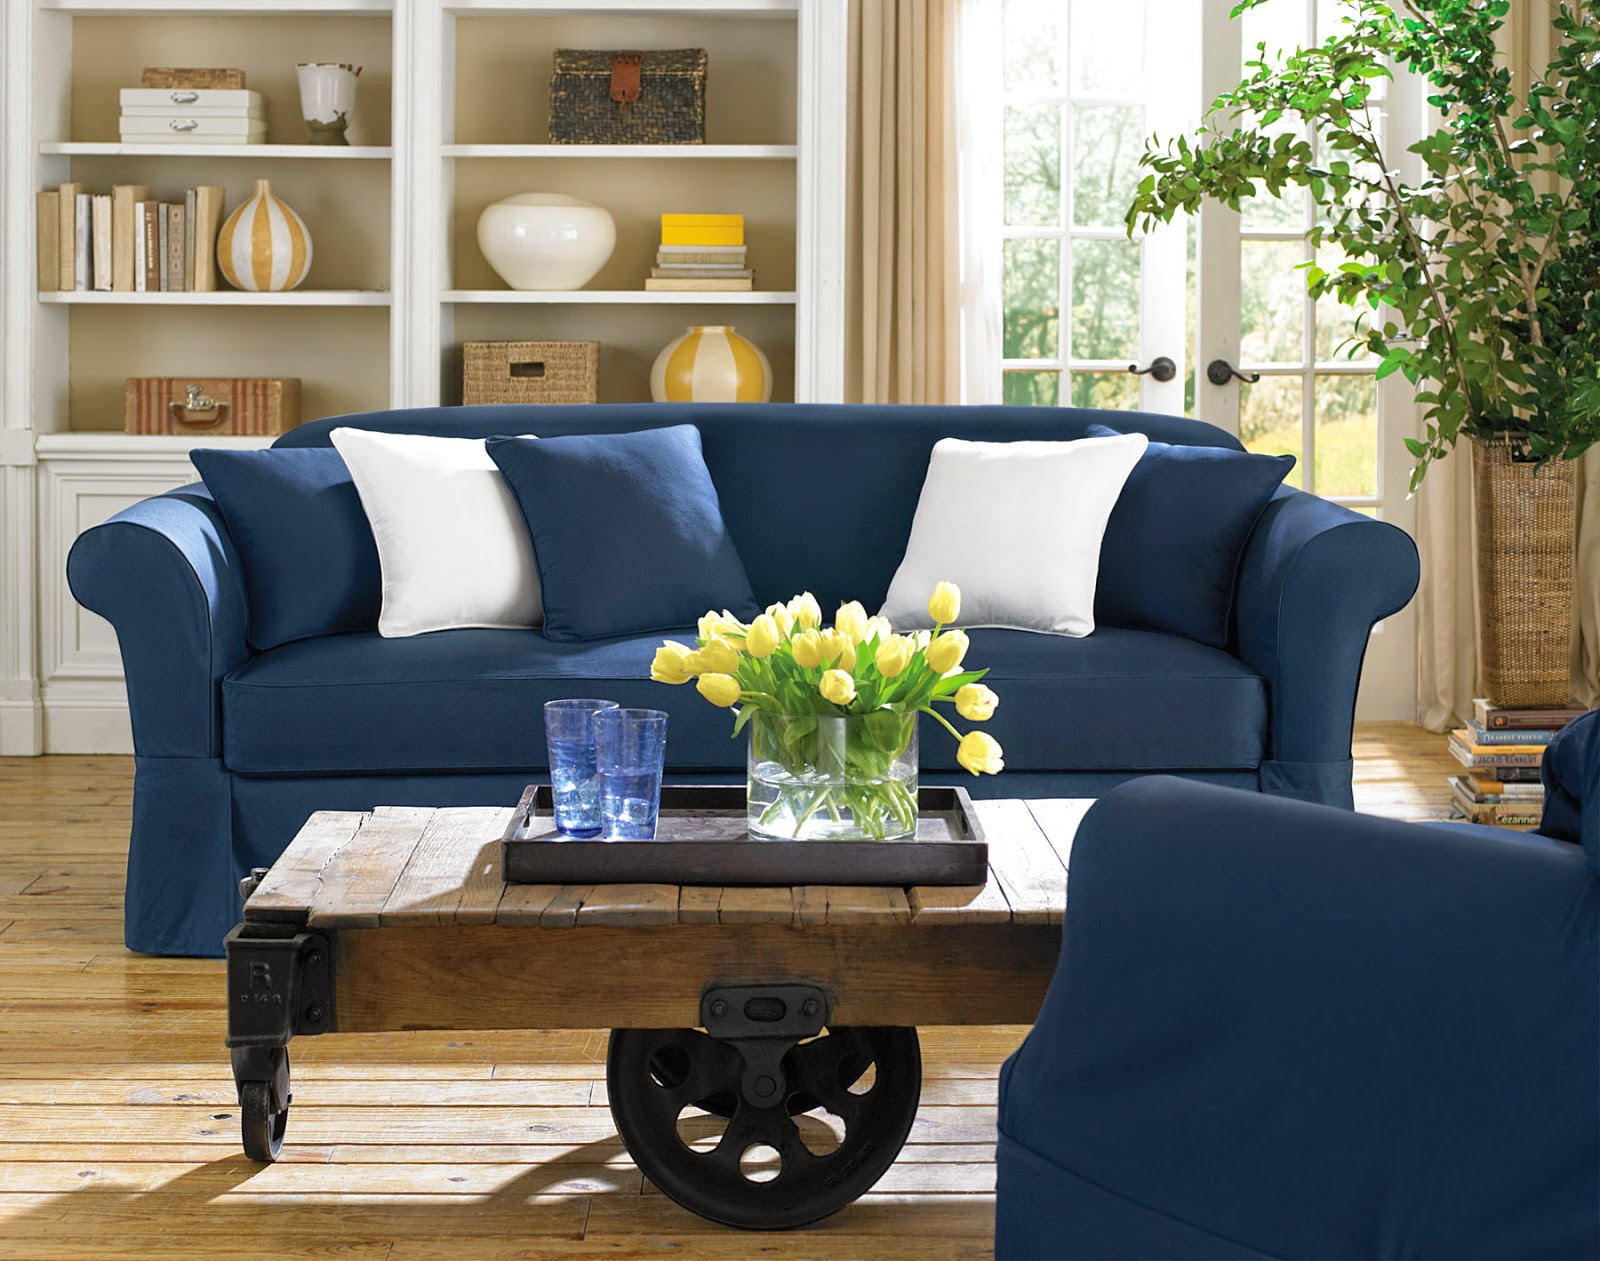 http://www.surefit.net/shop/categories/sofa-loveseat-and-chair-slipcovers-separate-seat/twill-supreme-separate-seat.cfm?sku=35076&stc=0526100001